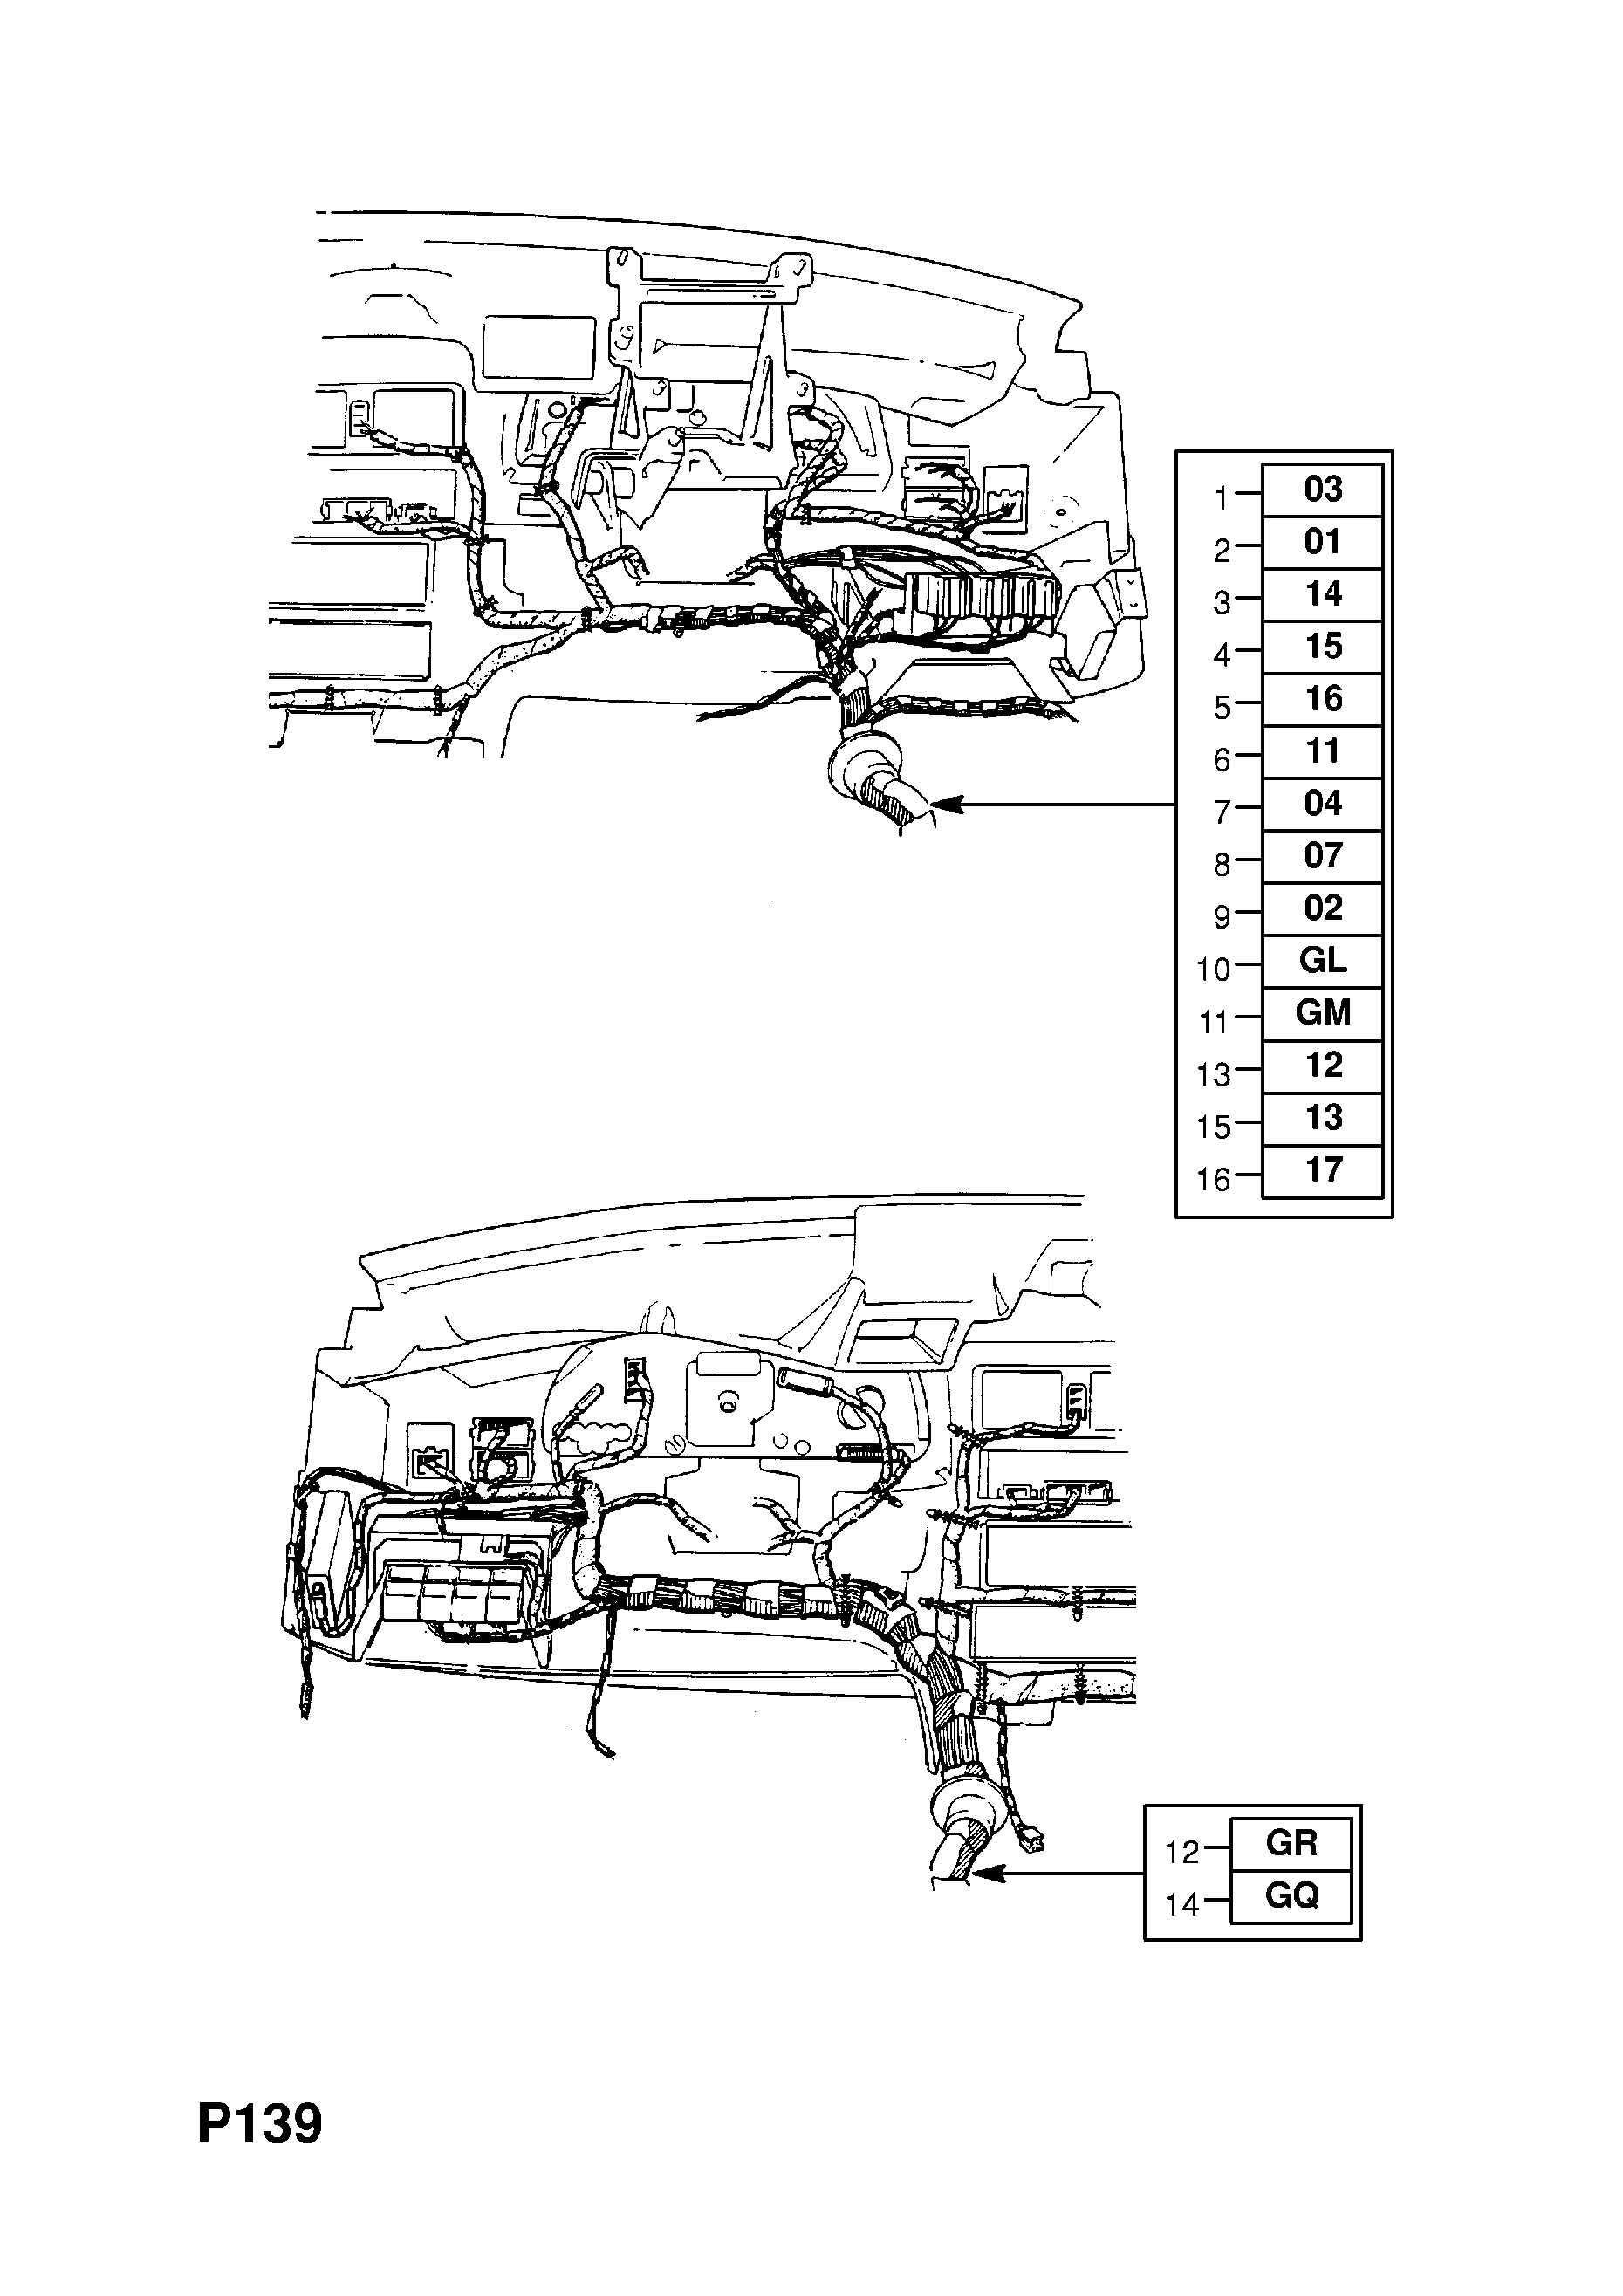 Opel Vectra A 1989 1995 P Electrical 8 Wiring Harness 85 I Would Like To Know How Get Diagram List Of Parts